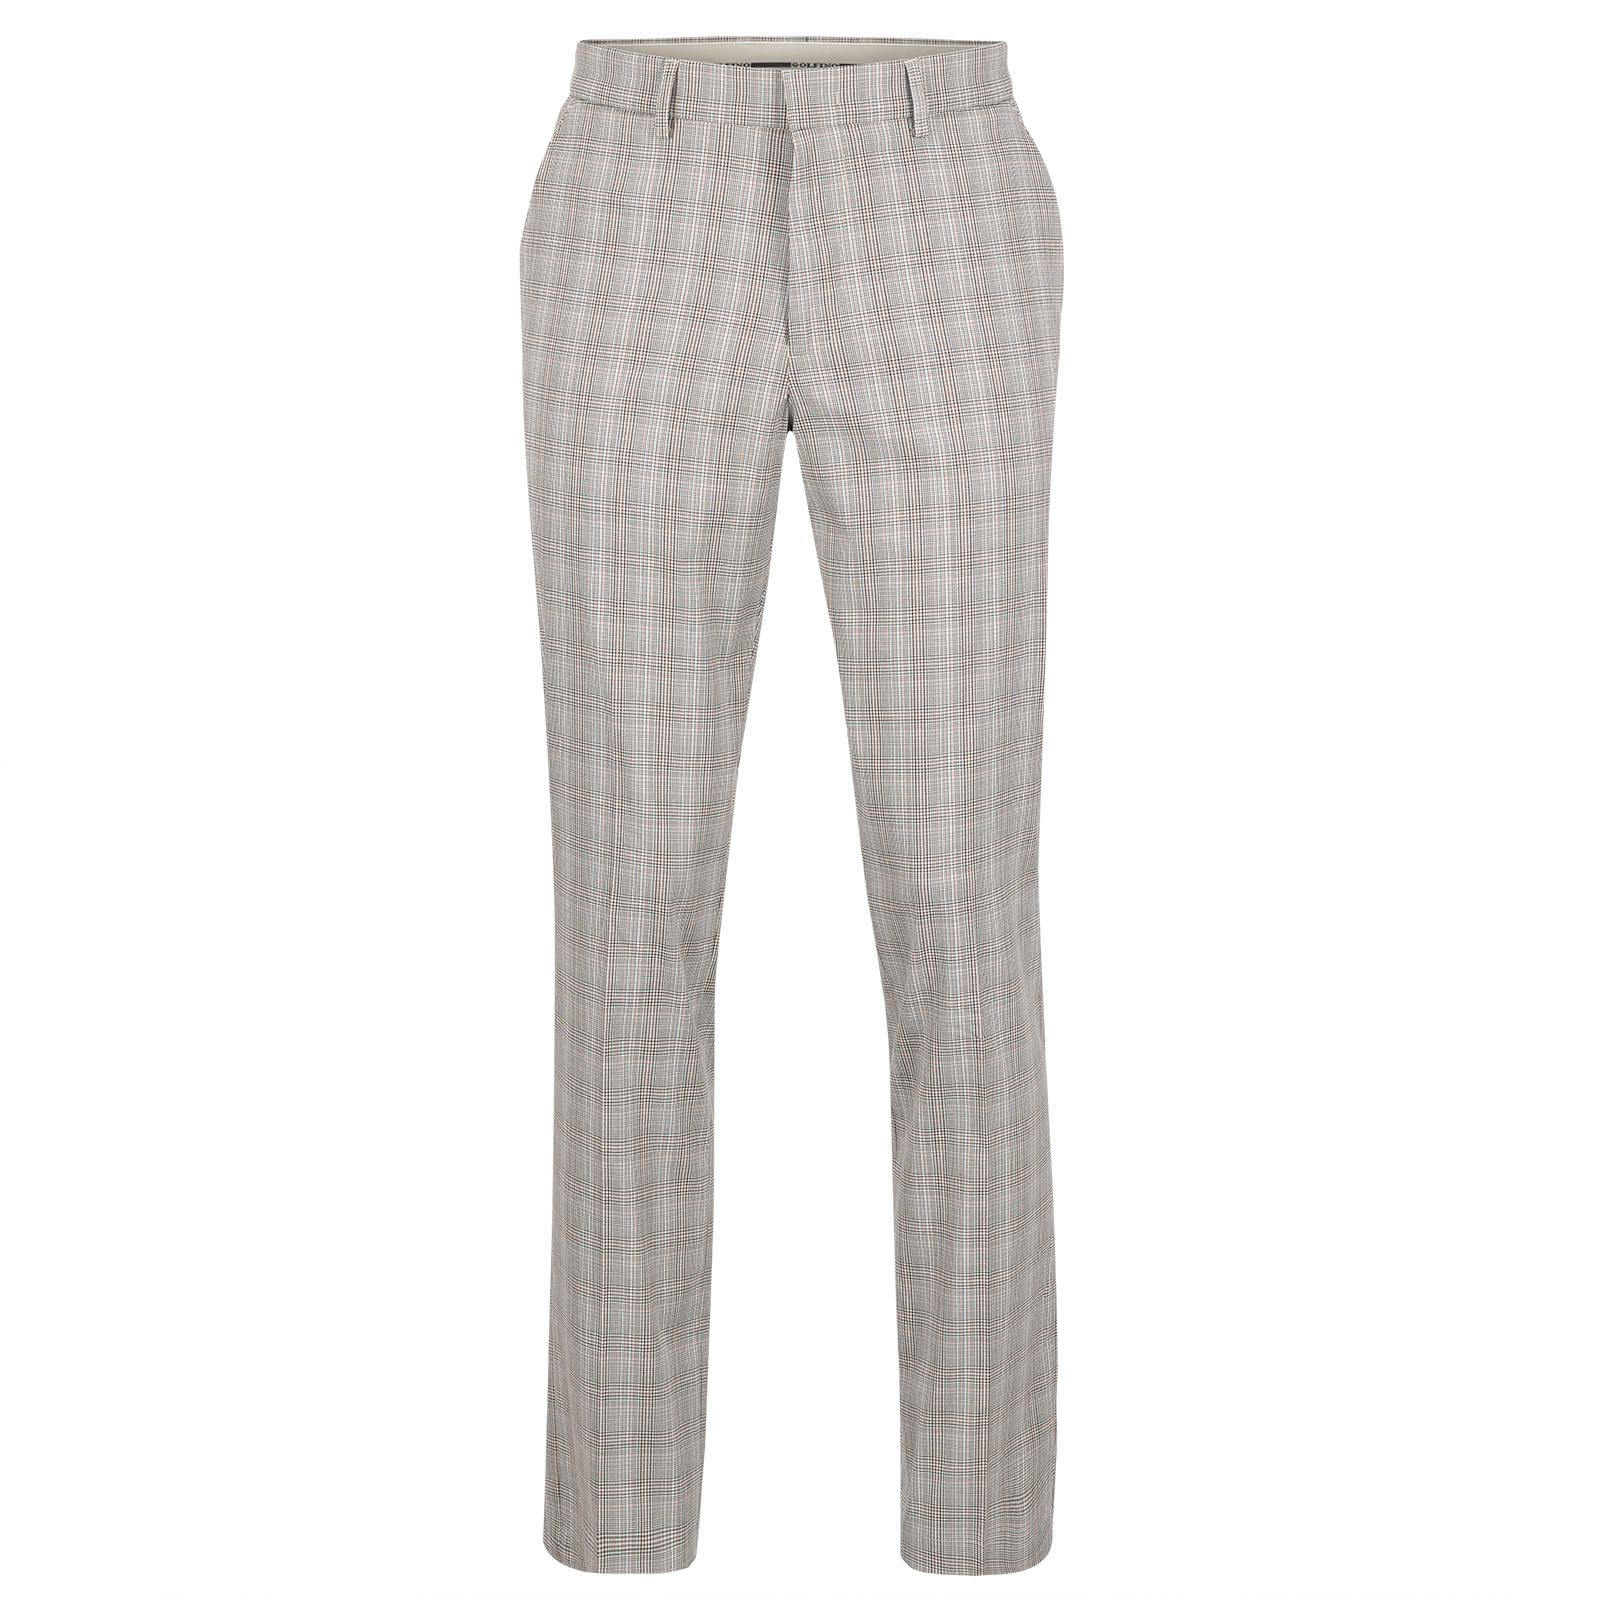 Men's cotton mix chequered stretch golf trousers for a classic look